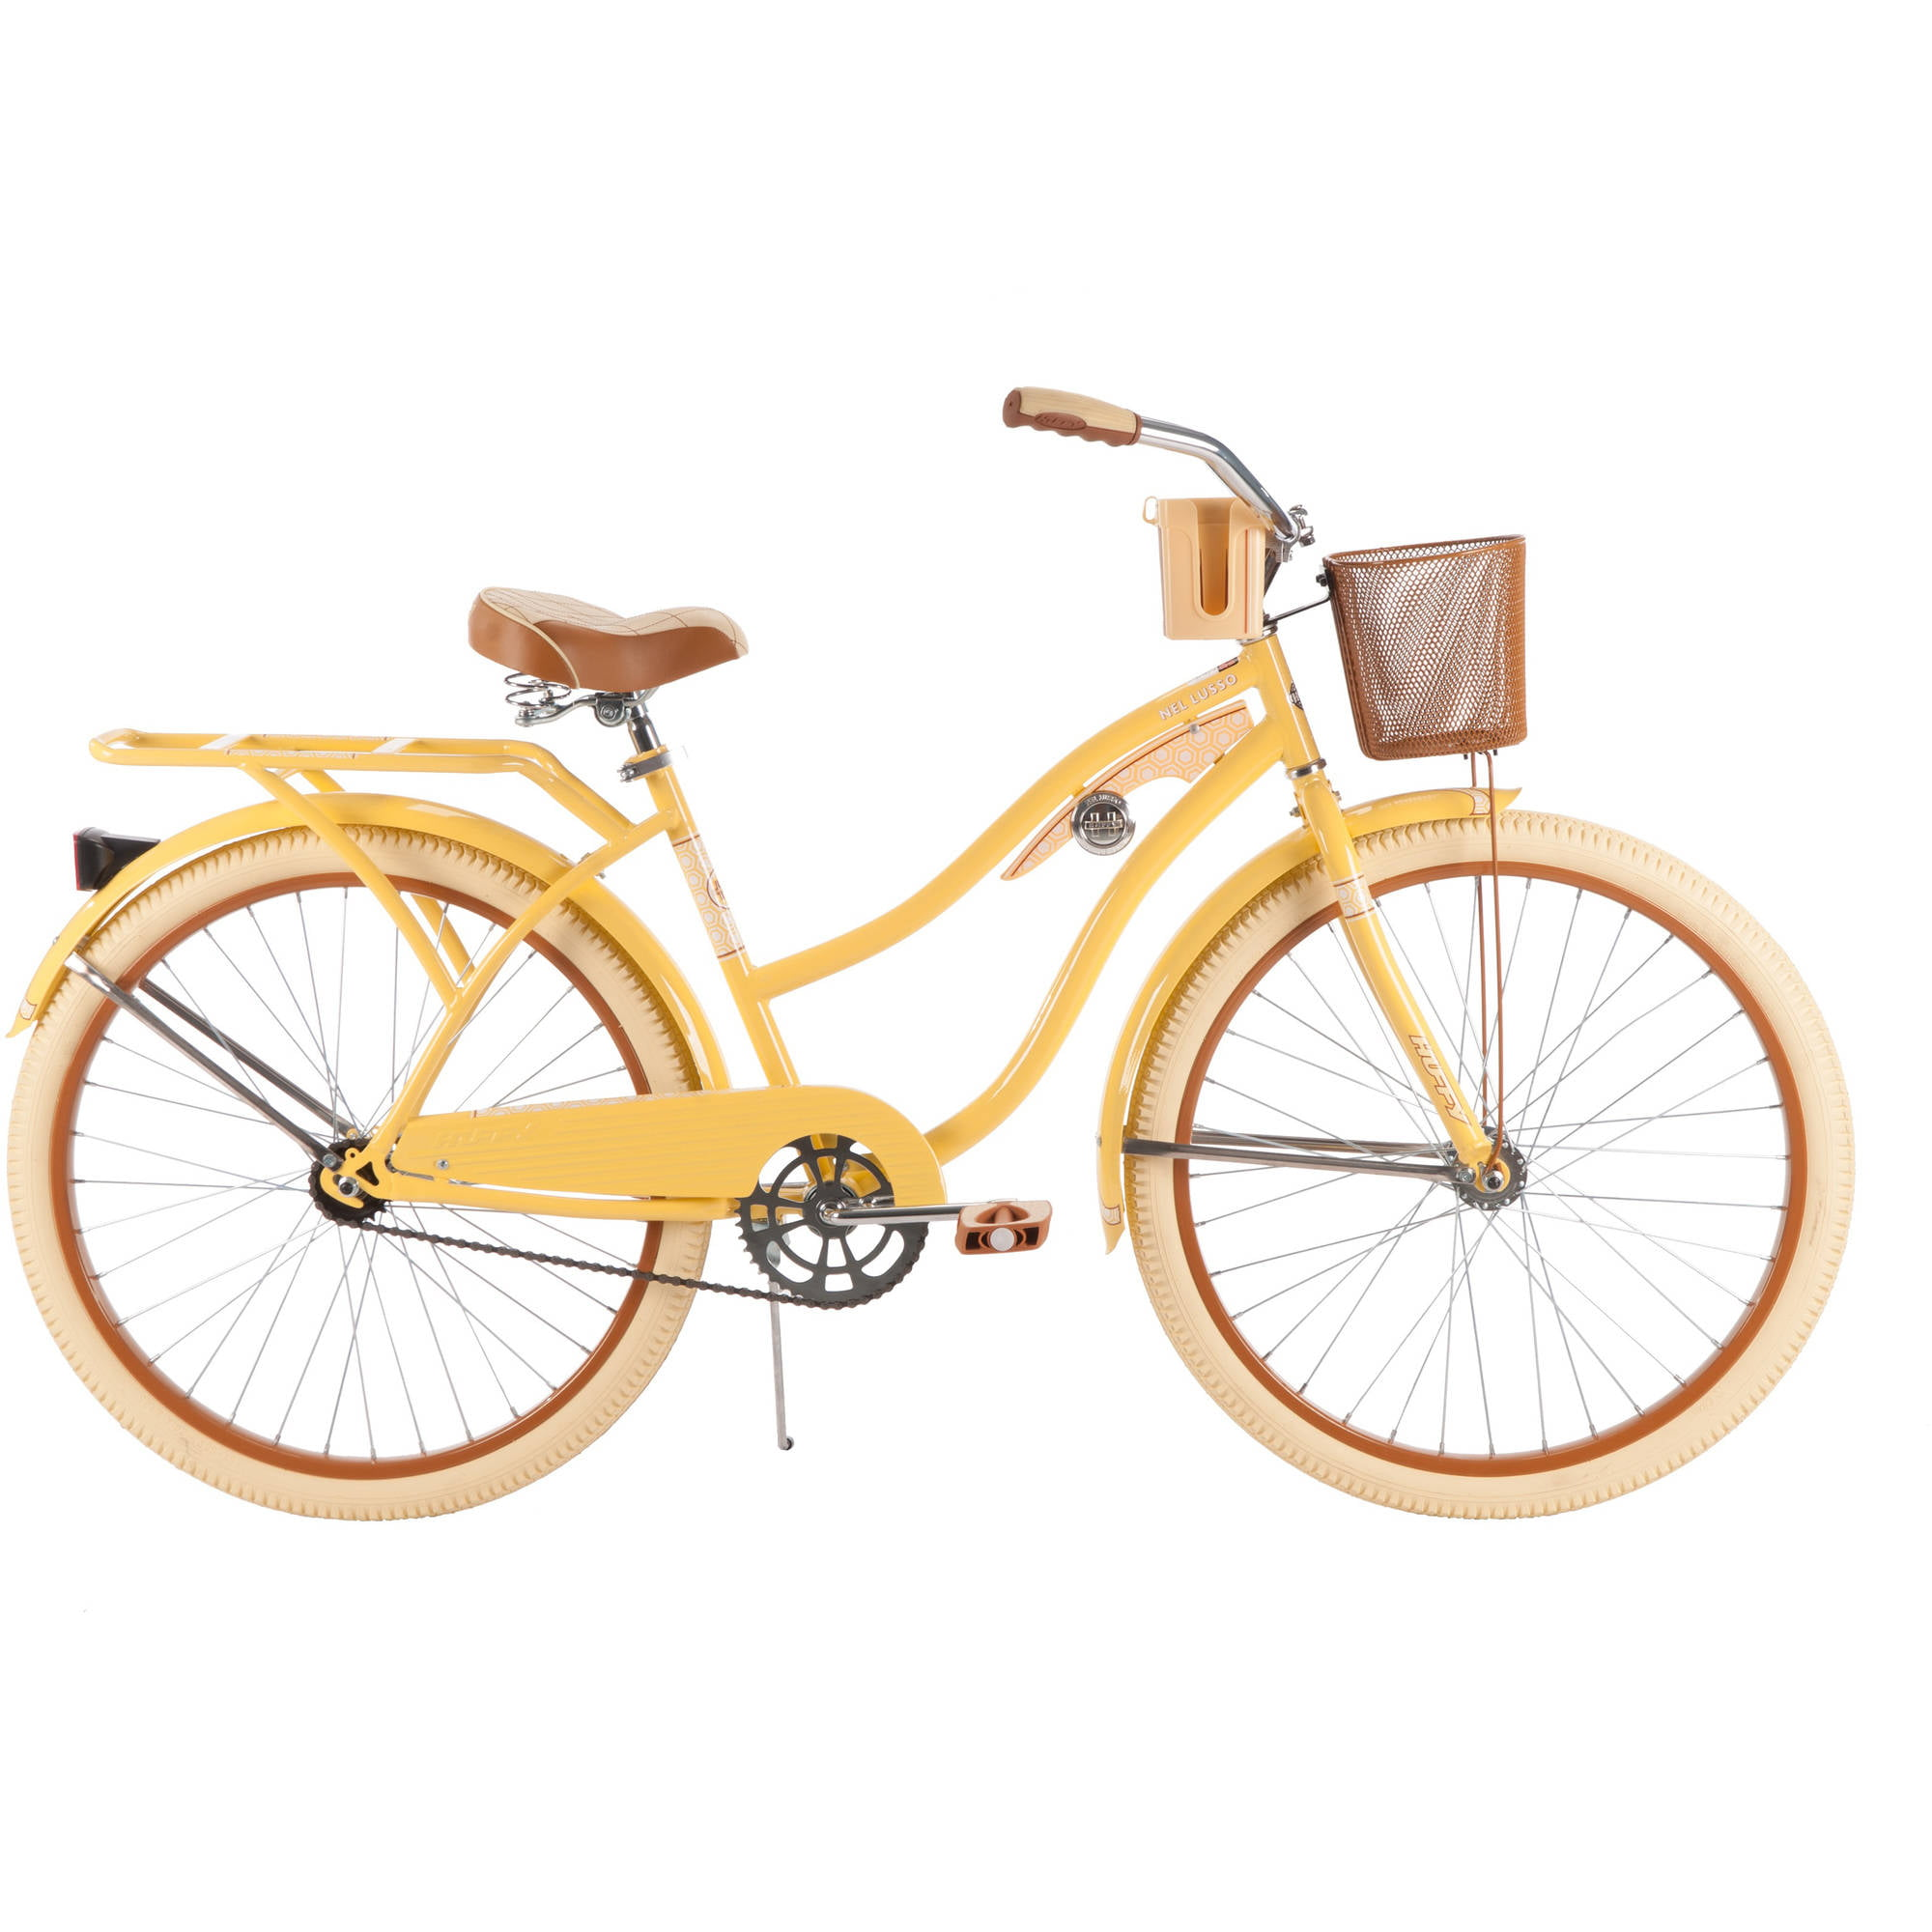 "Huffy 26"" Nel Lusso Women's Cruiser Bike, Yellow by Huffy"